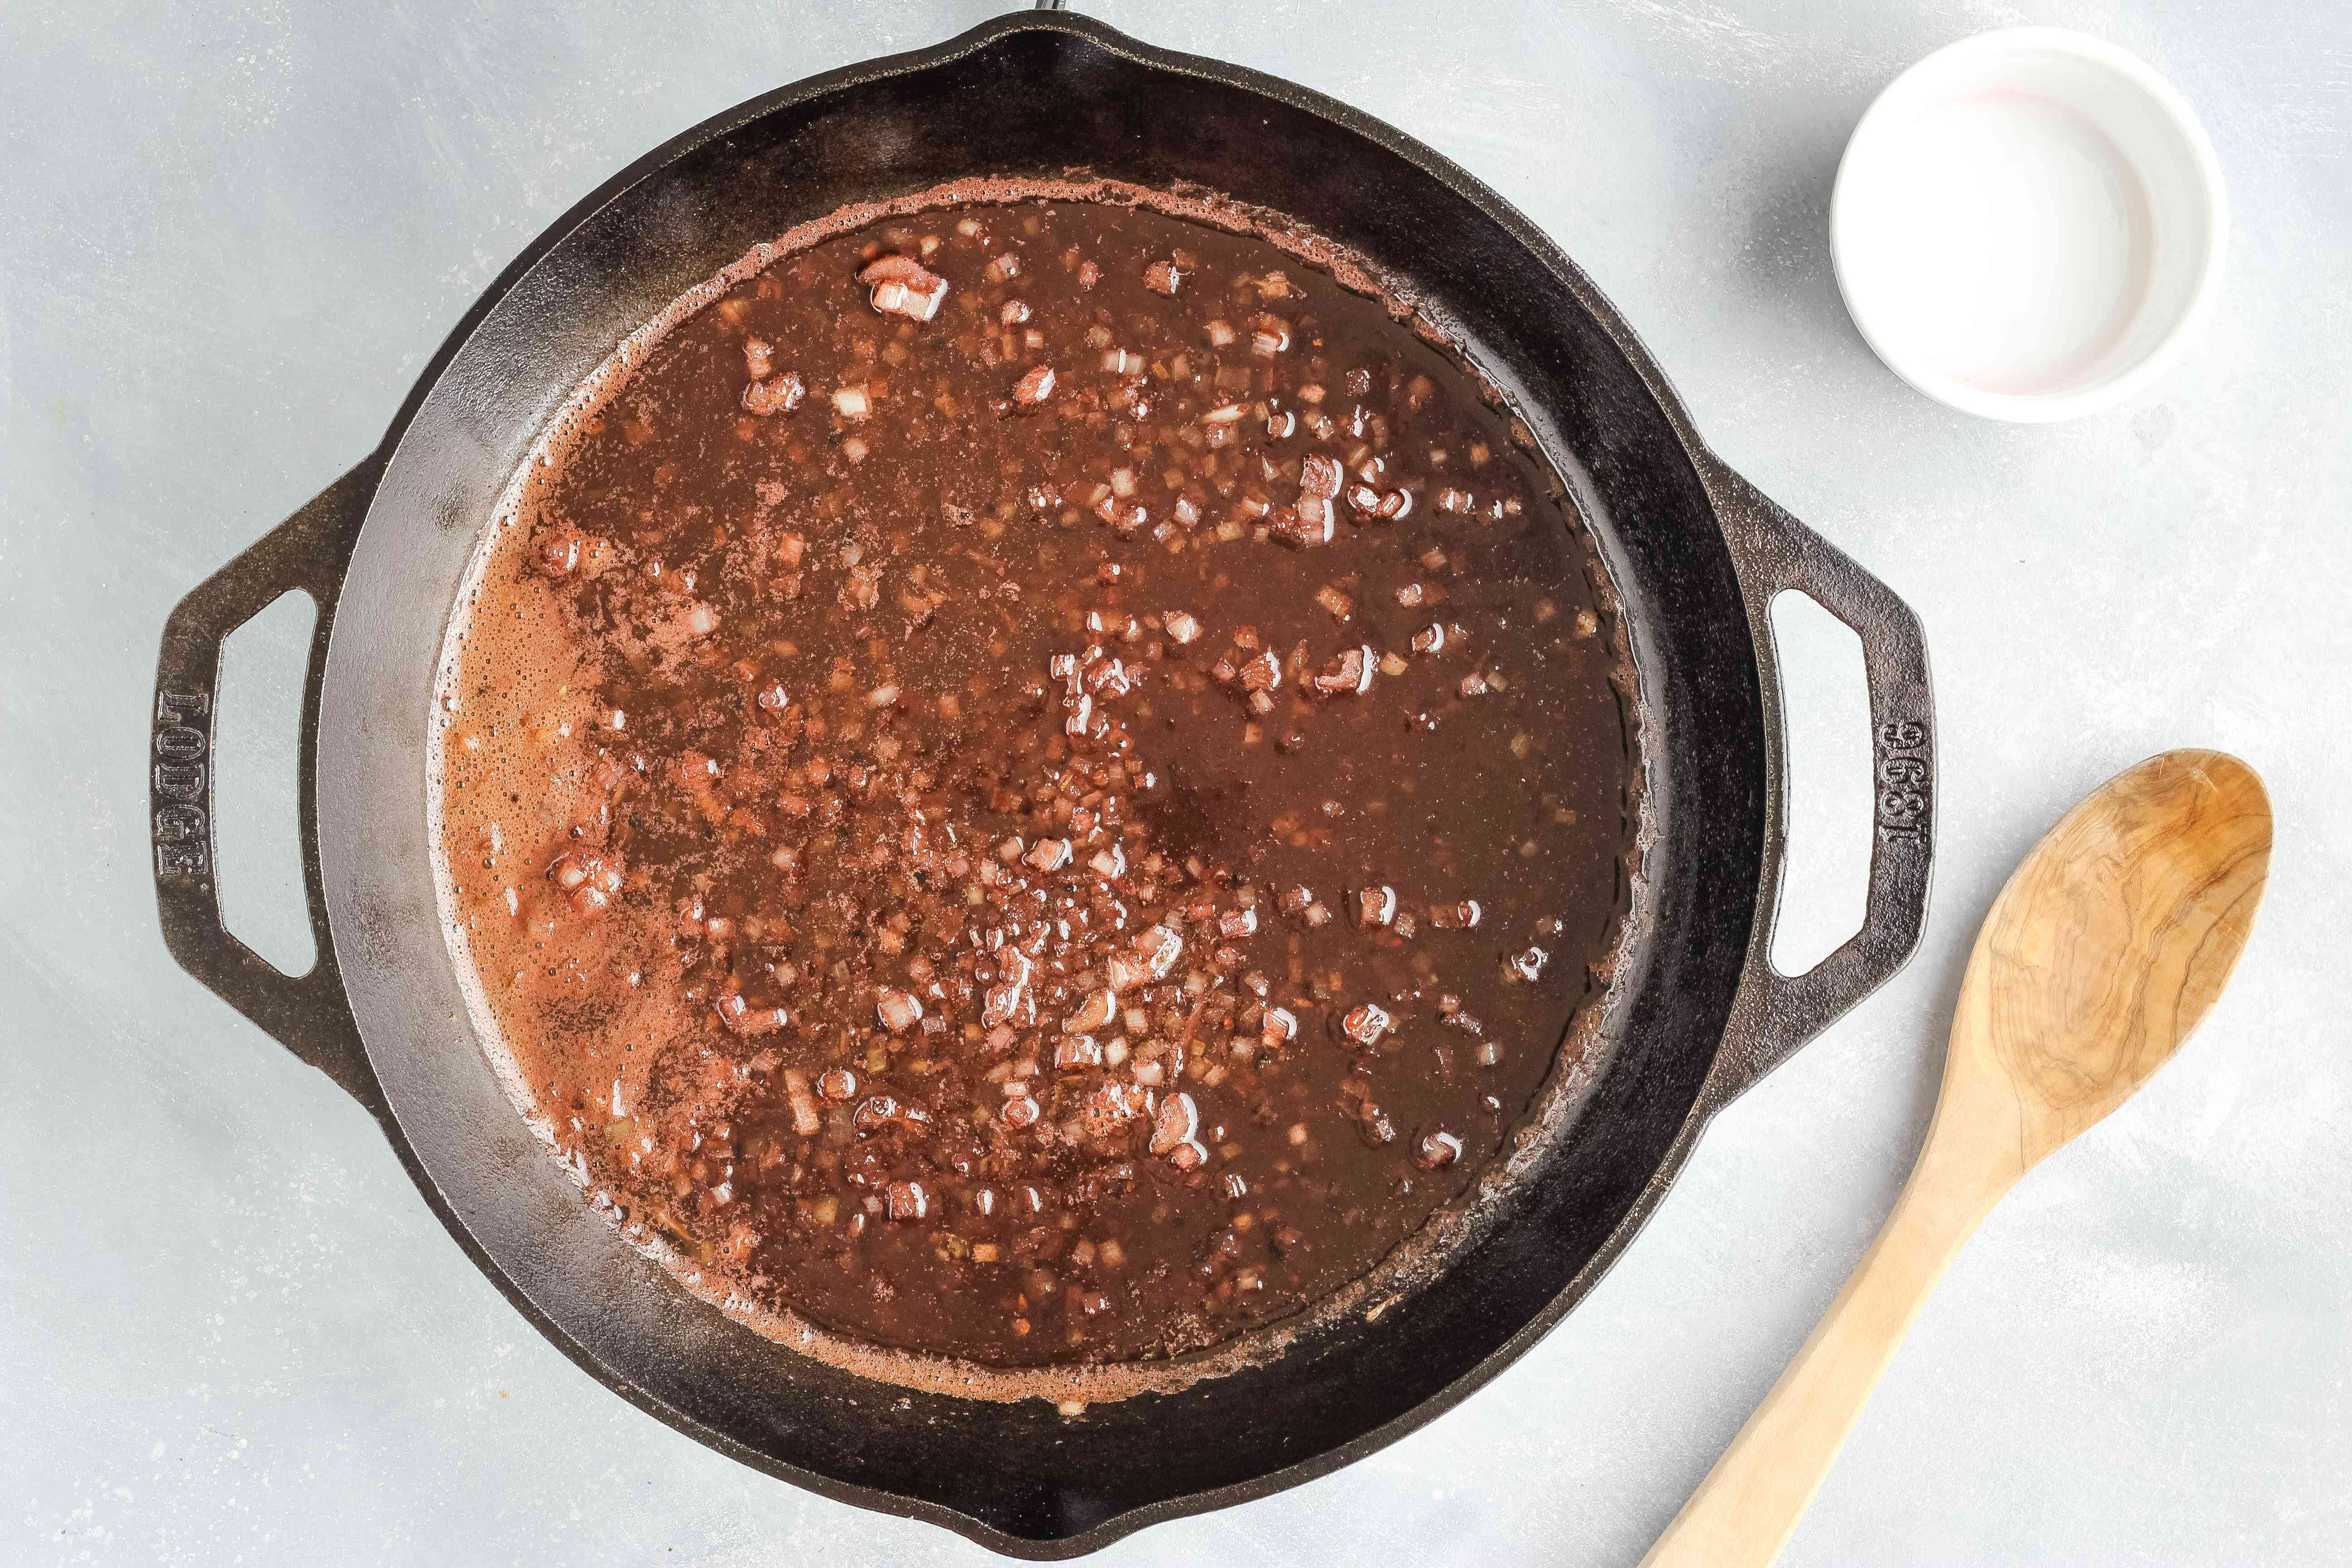 Bringing the wine sauce to a boil in a cast-iron skillet